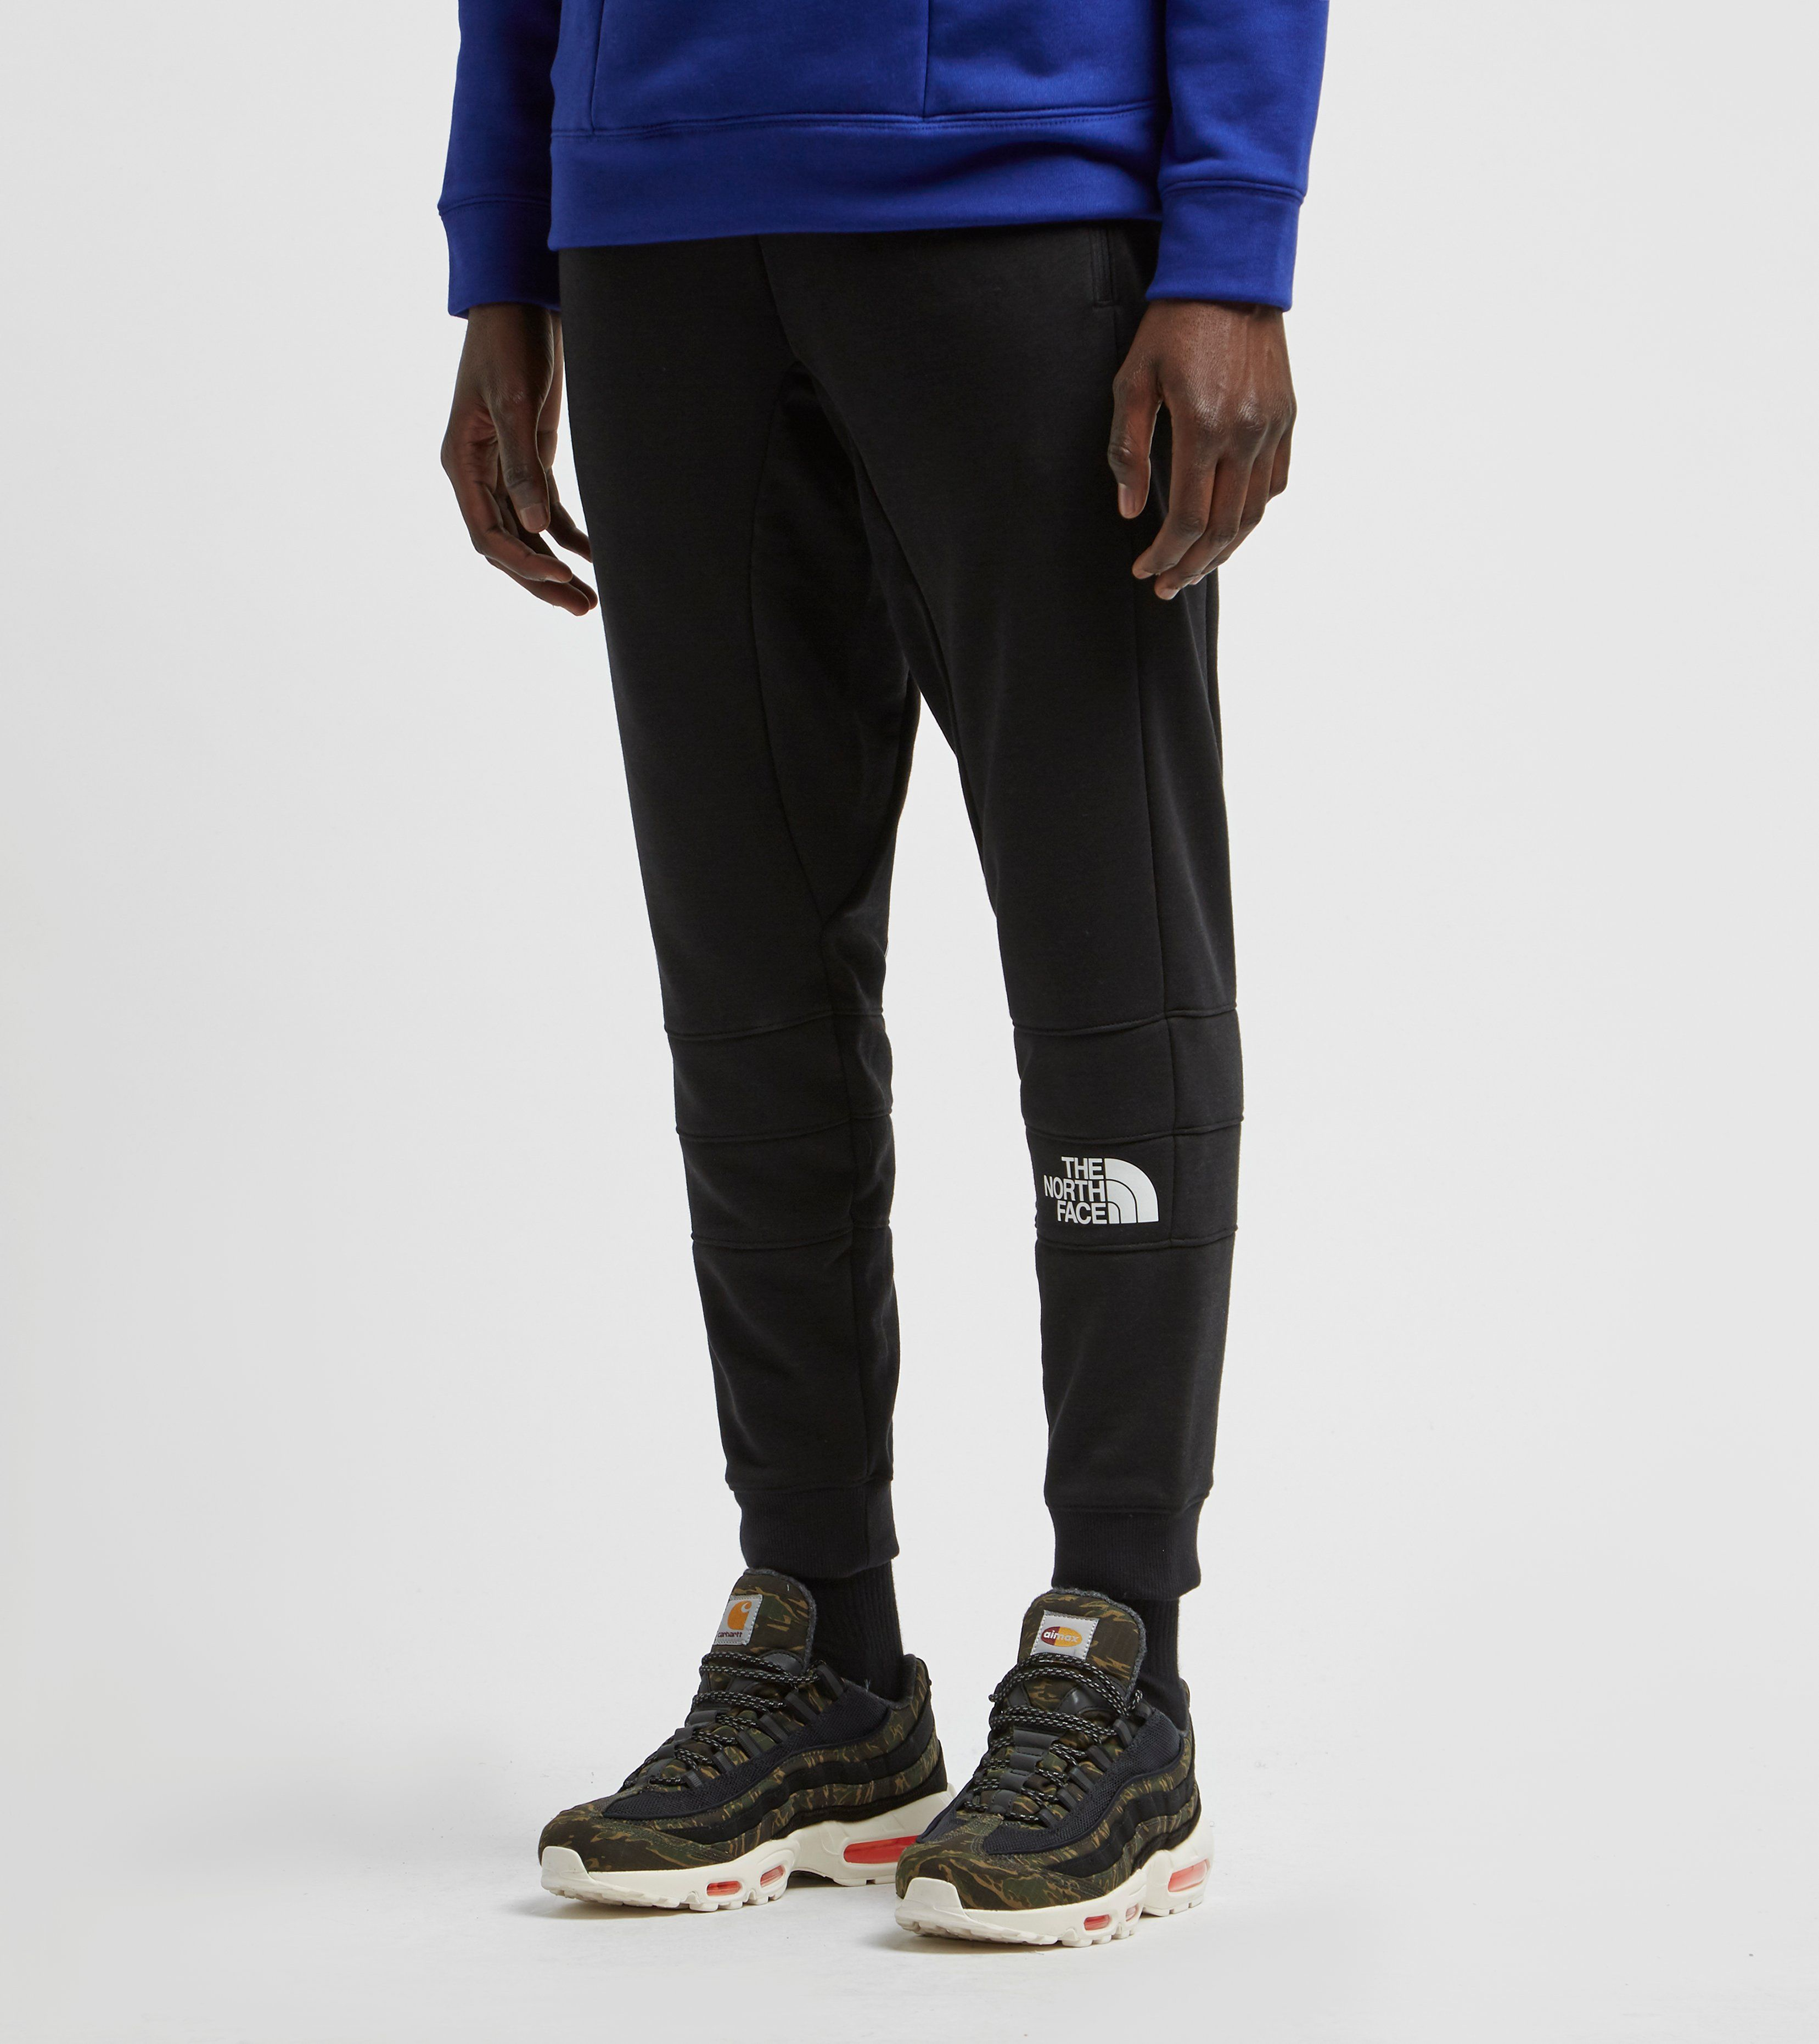 The North Face Light Fleece Pant